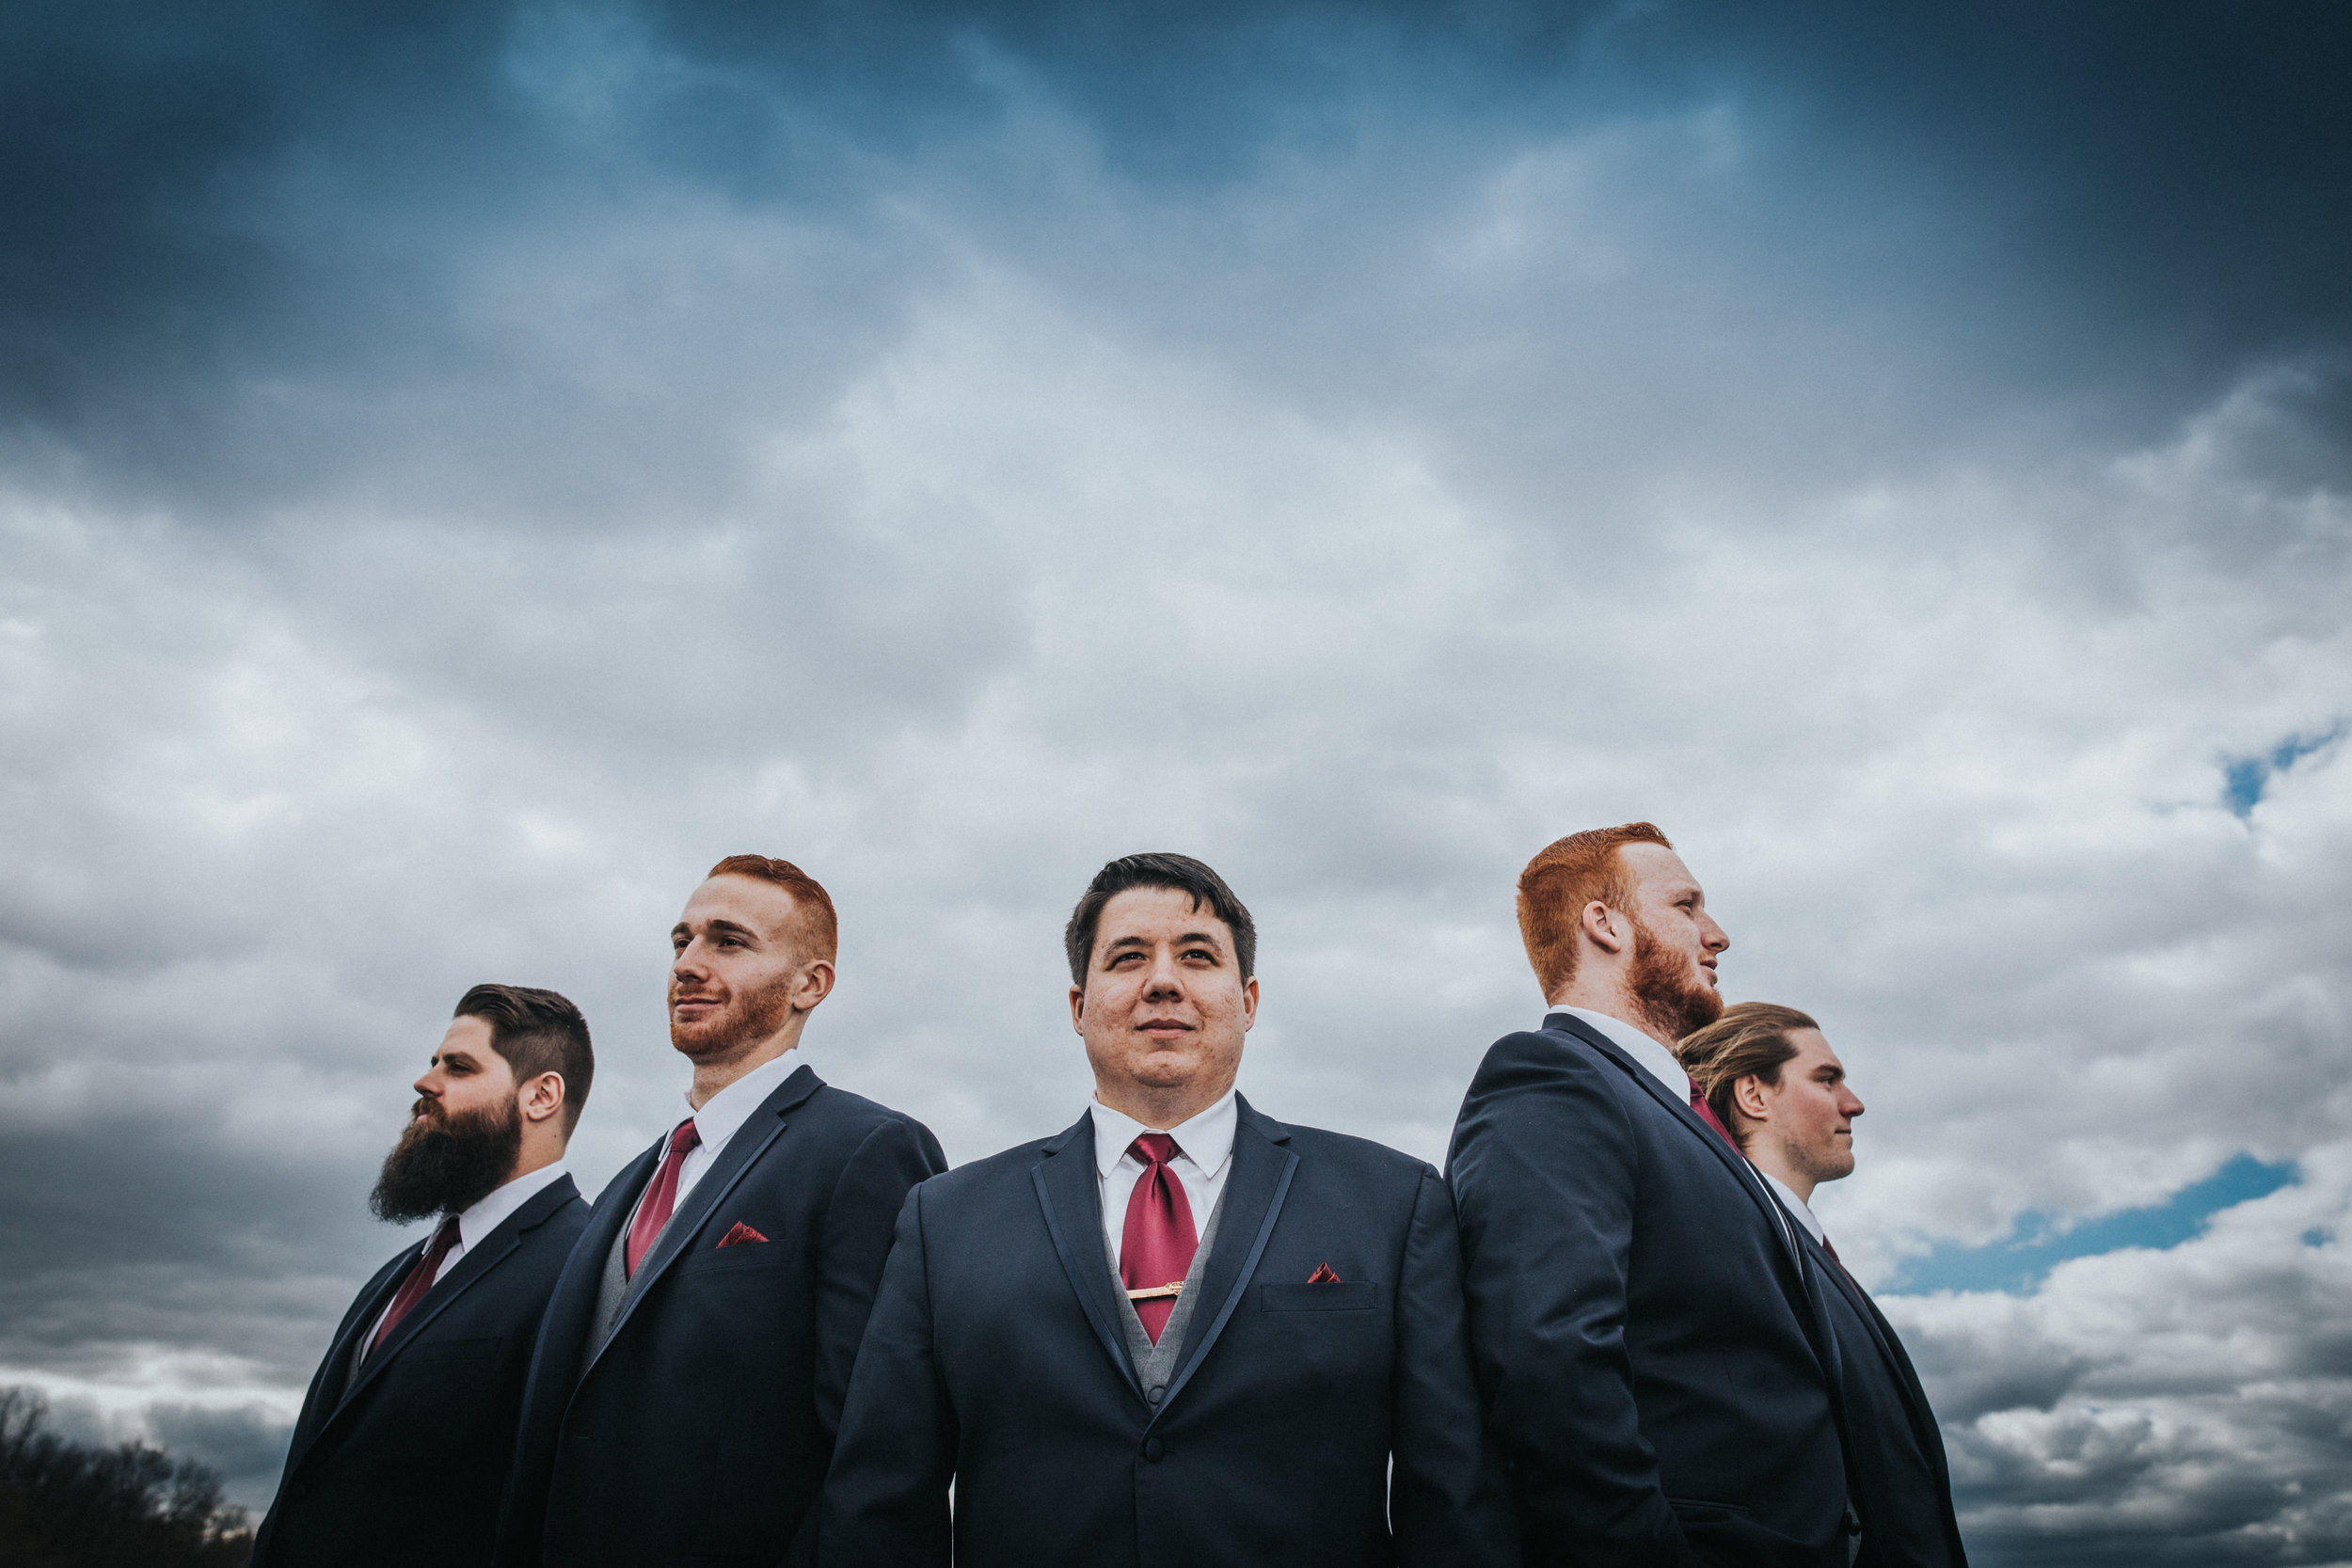 New-Jersey-Wedding-Photographer-ReceptionCenter-Valeria&Mike-Bridal-Party (8 of 31).jpg